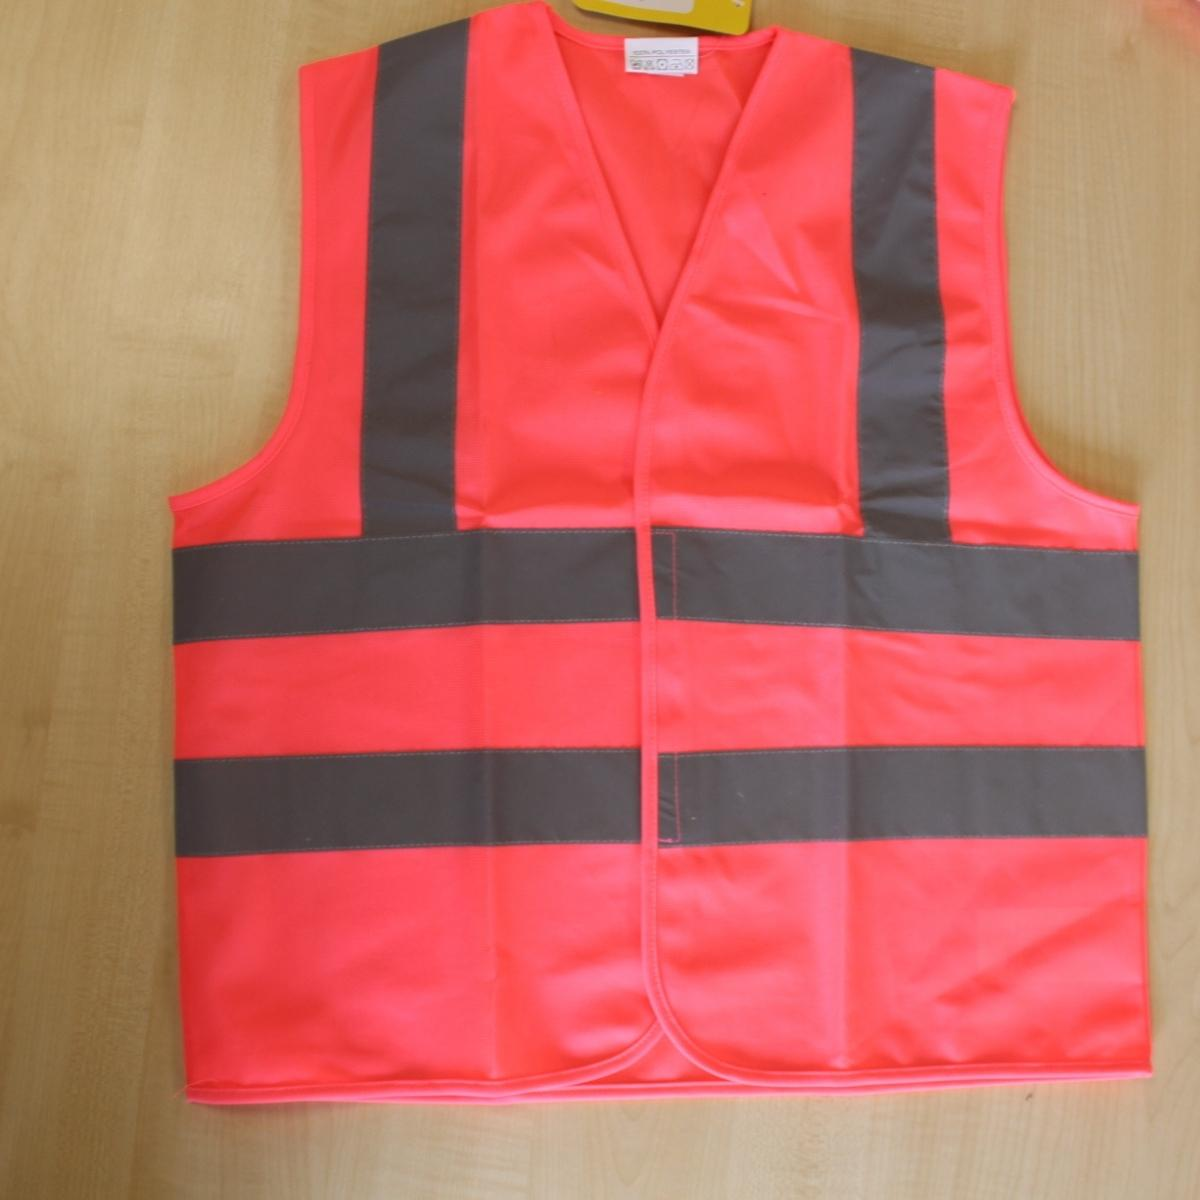 Pink Waistcoat with reflective bands over shoulders